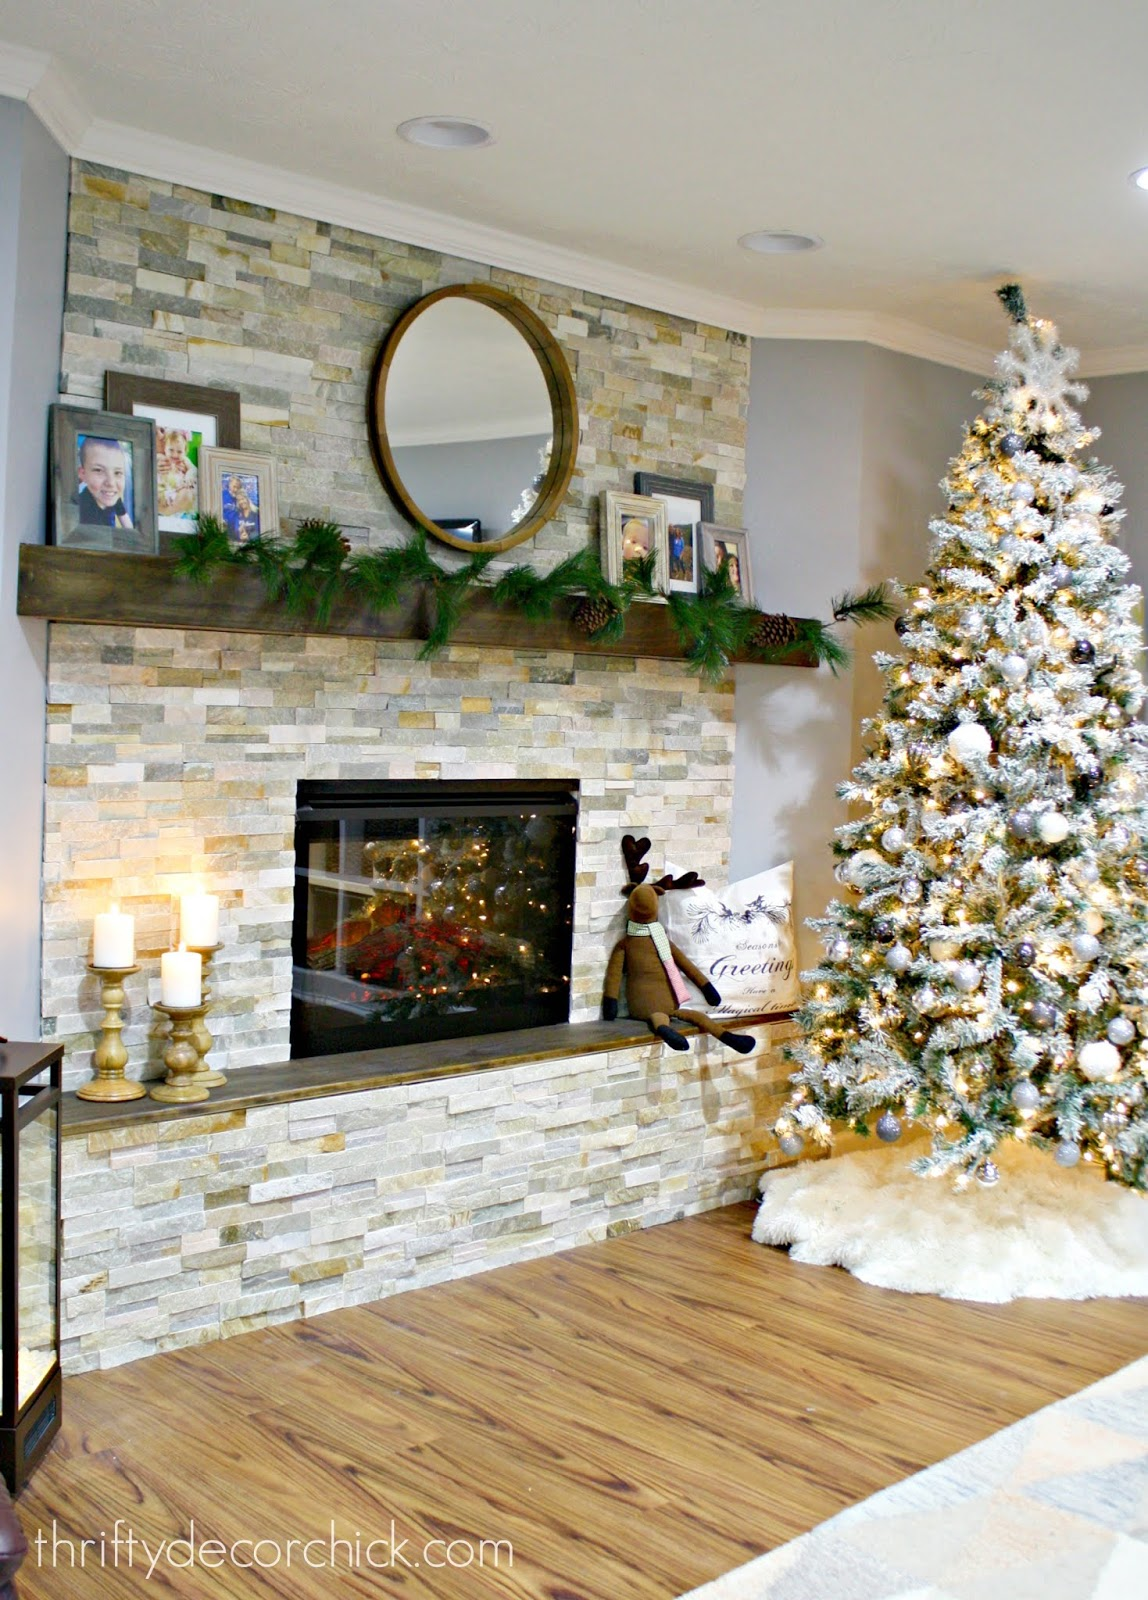 How to install stacked stone tile